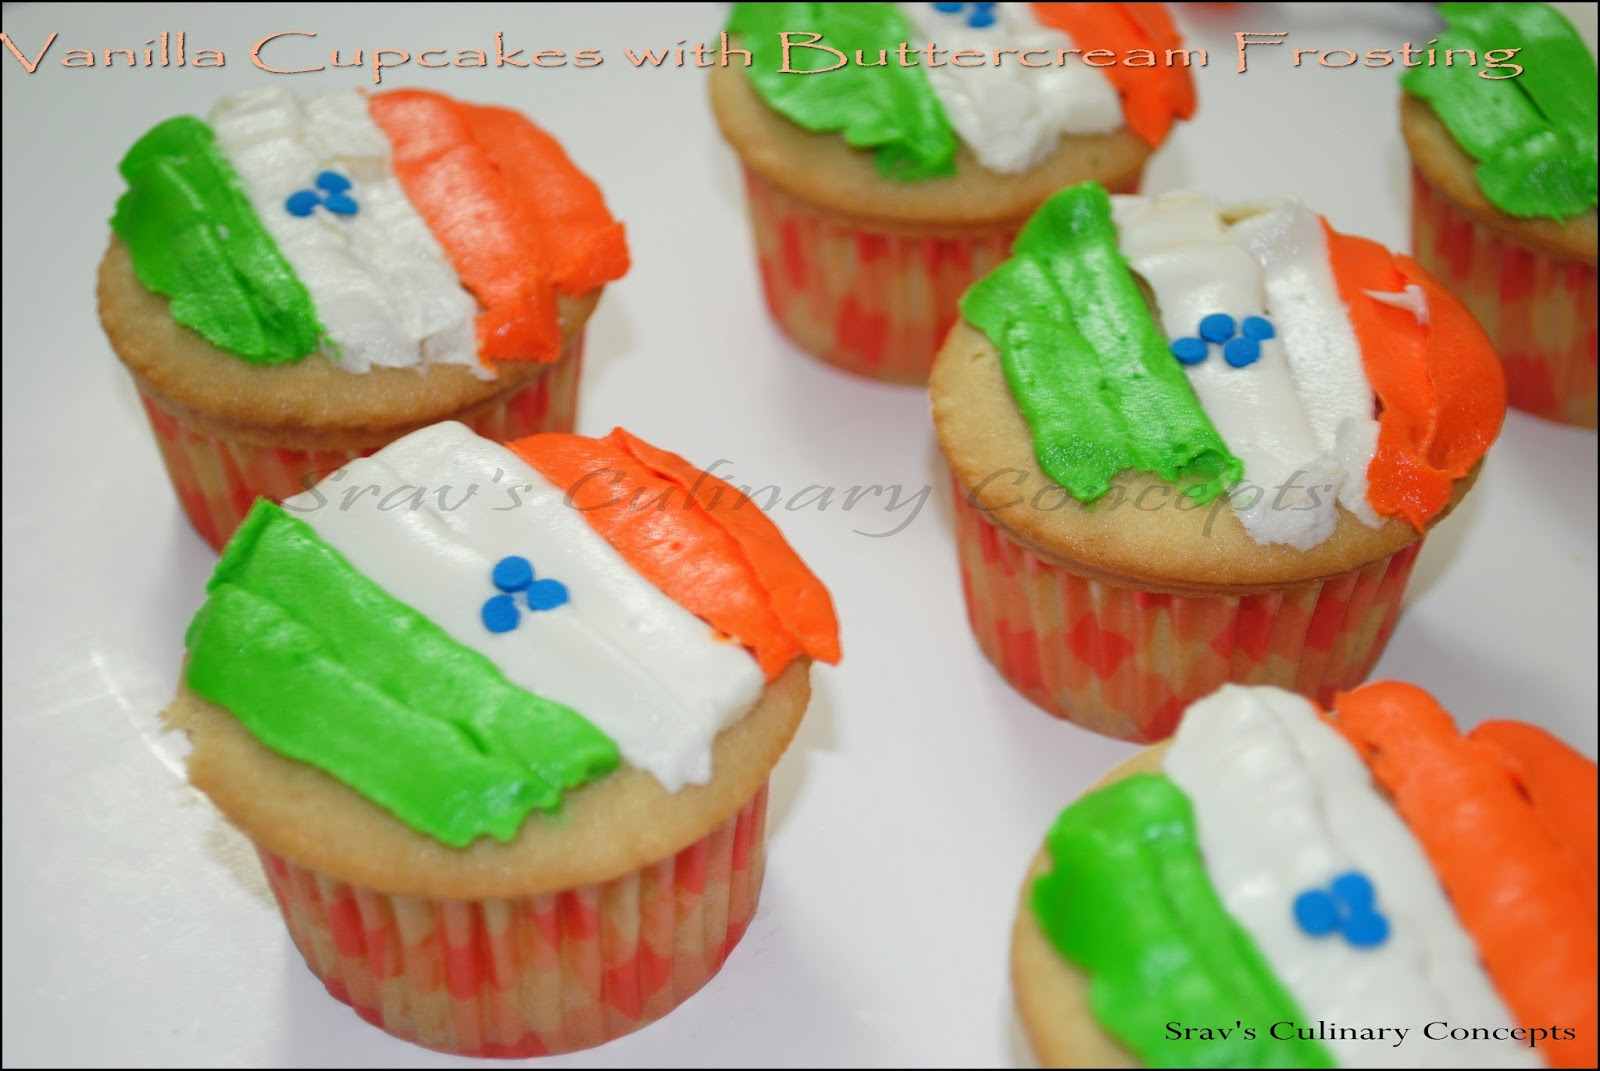 vanilla cupcakes with buttercream frosting - india flag special cupcakes for republic day